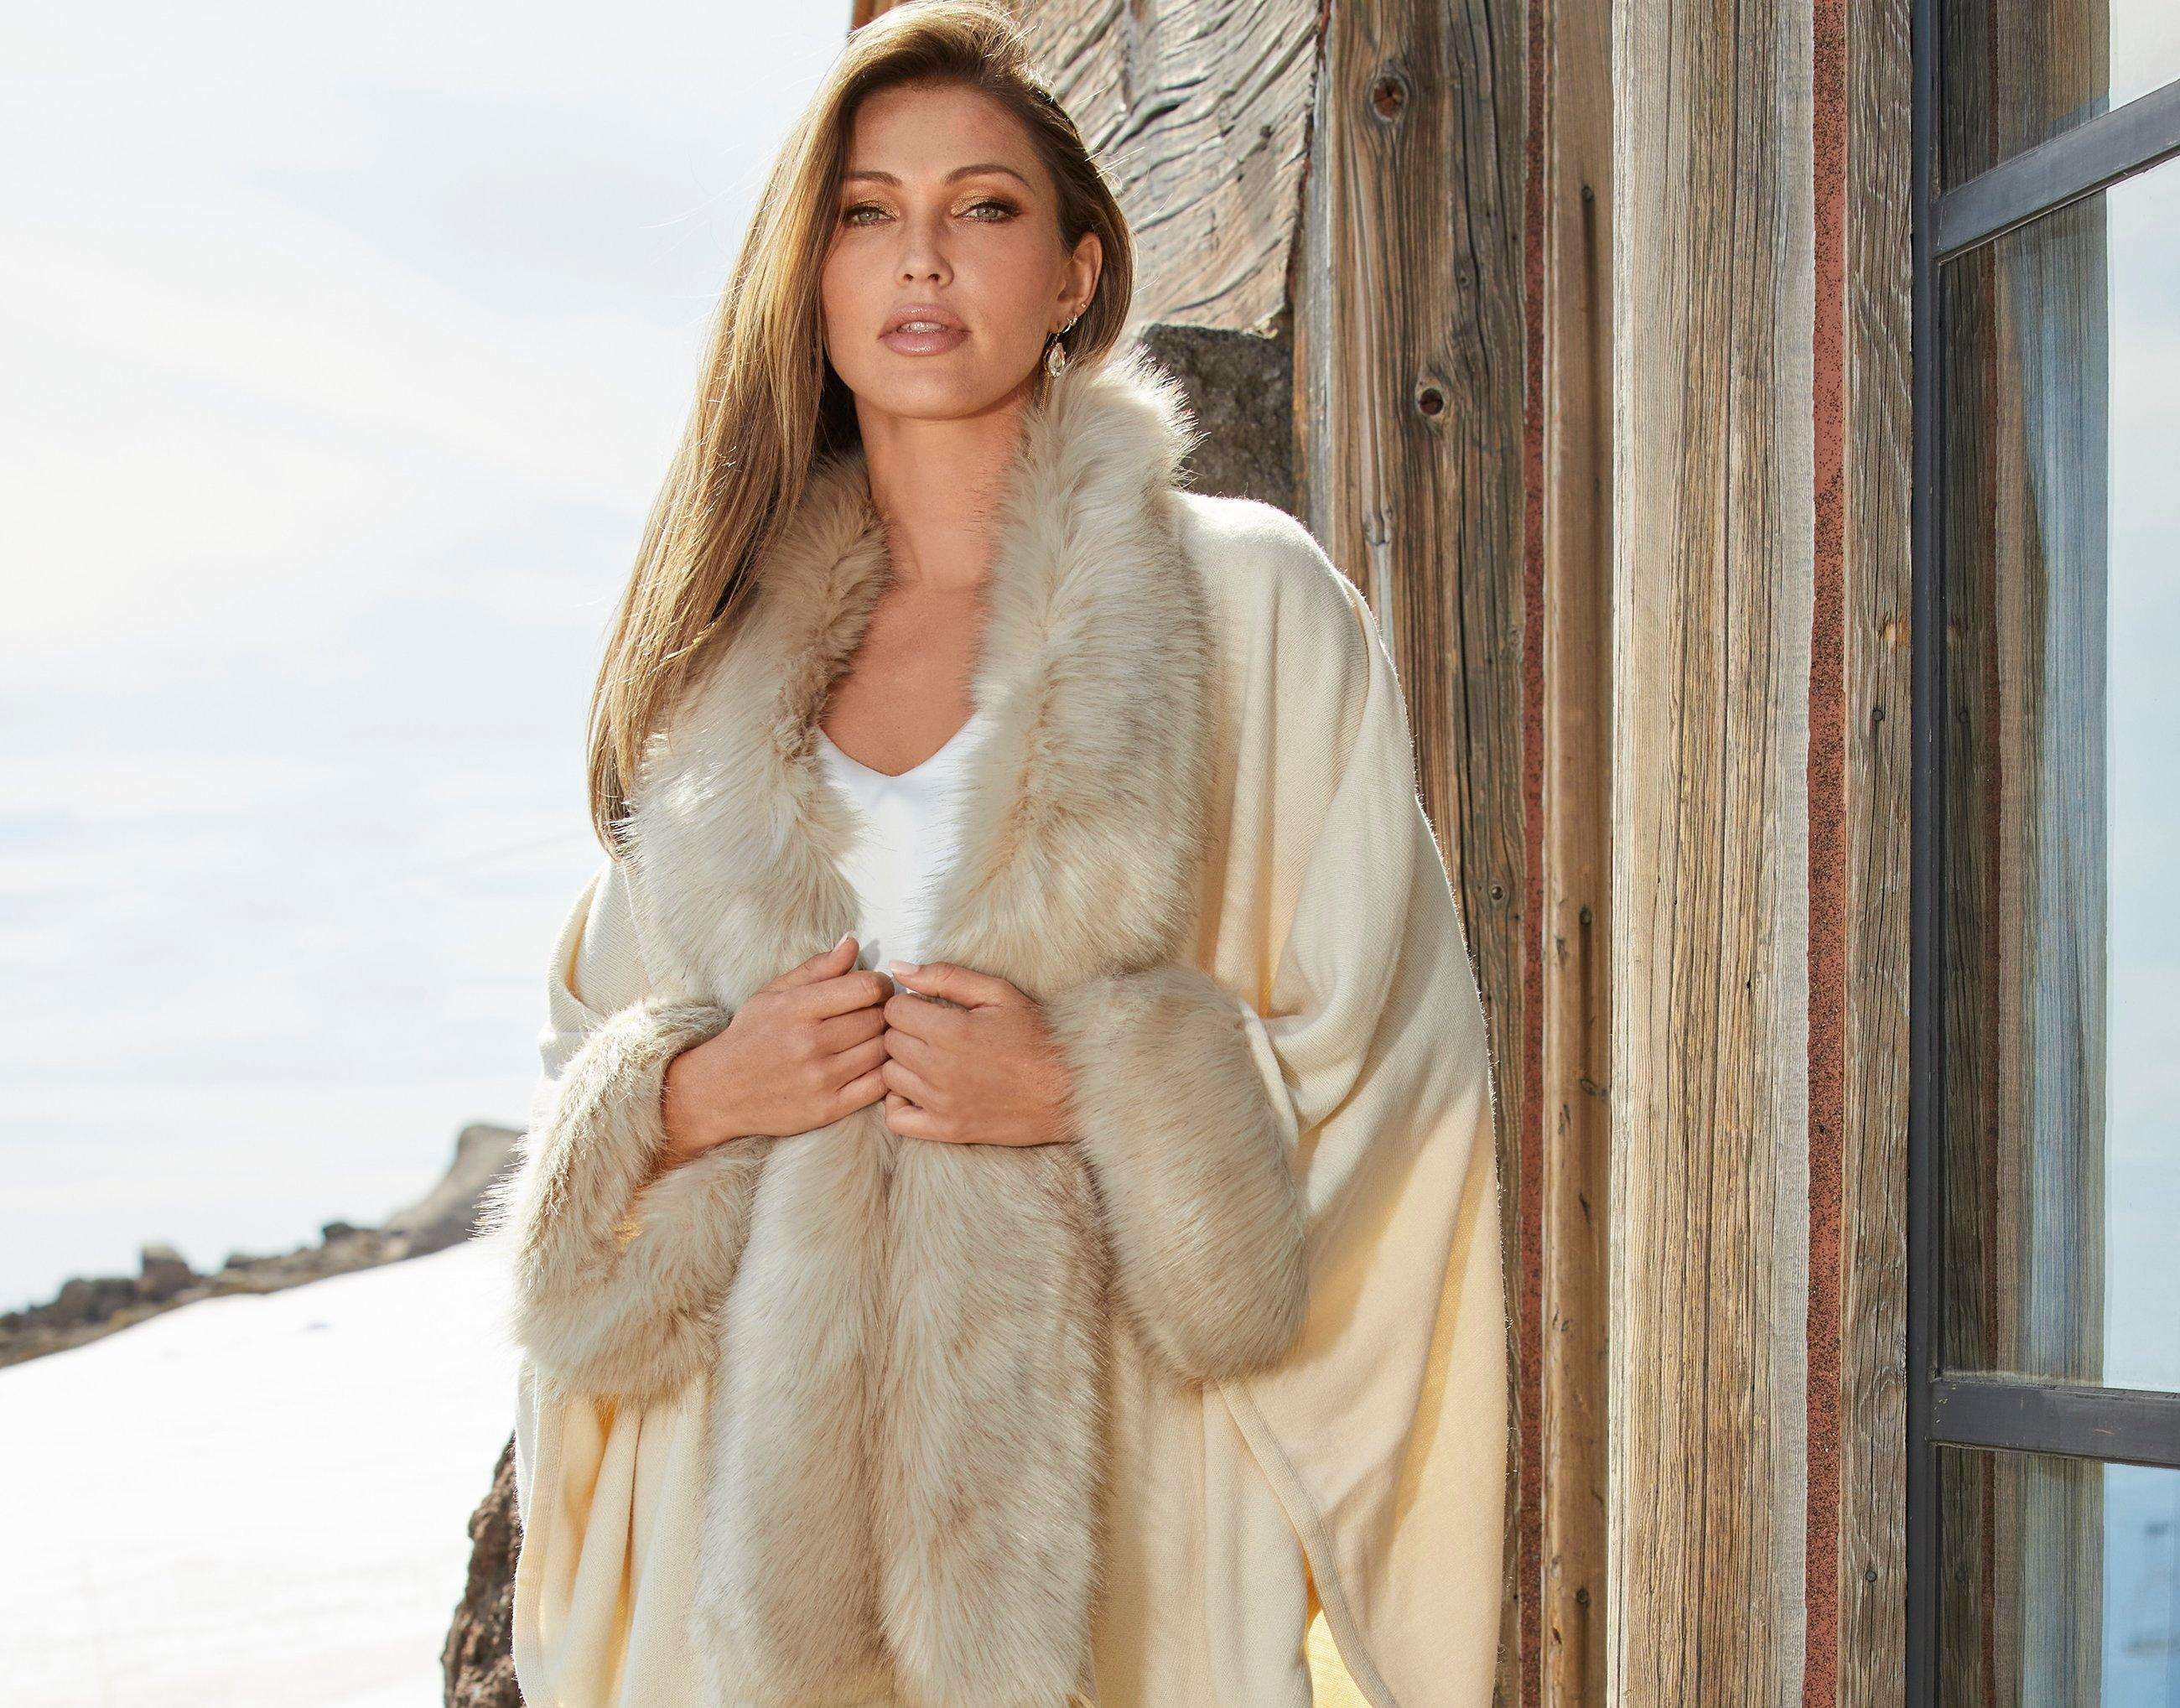 model wearing a beige faux fur poncho and white v-neck sleeveless top.